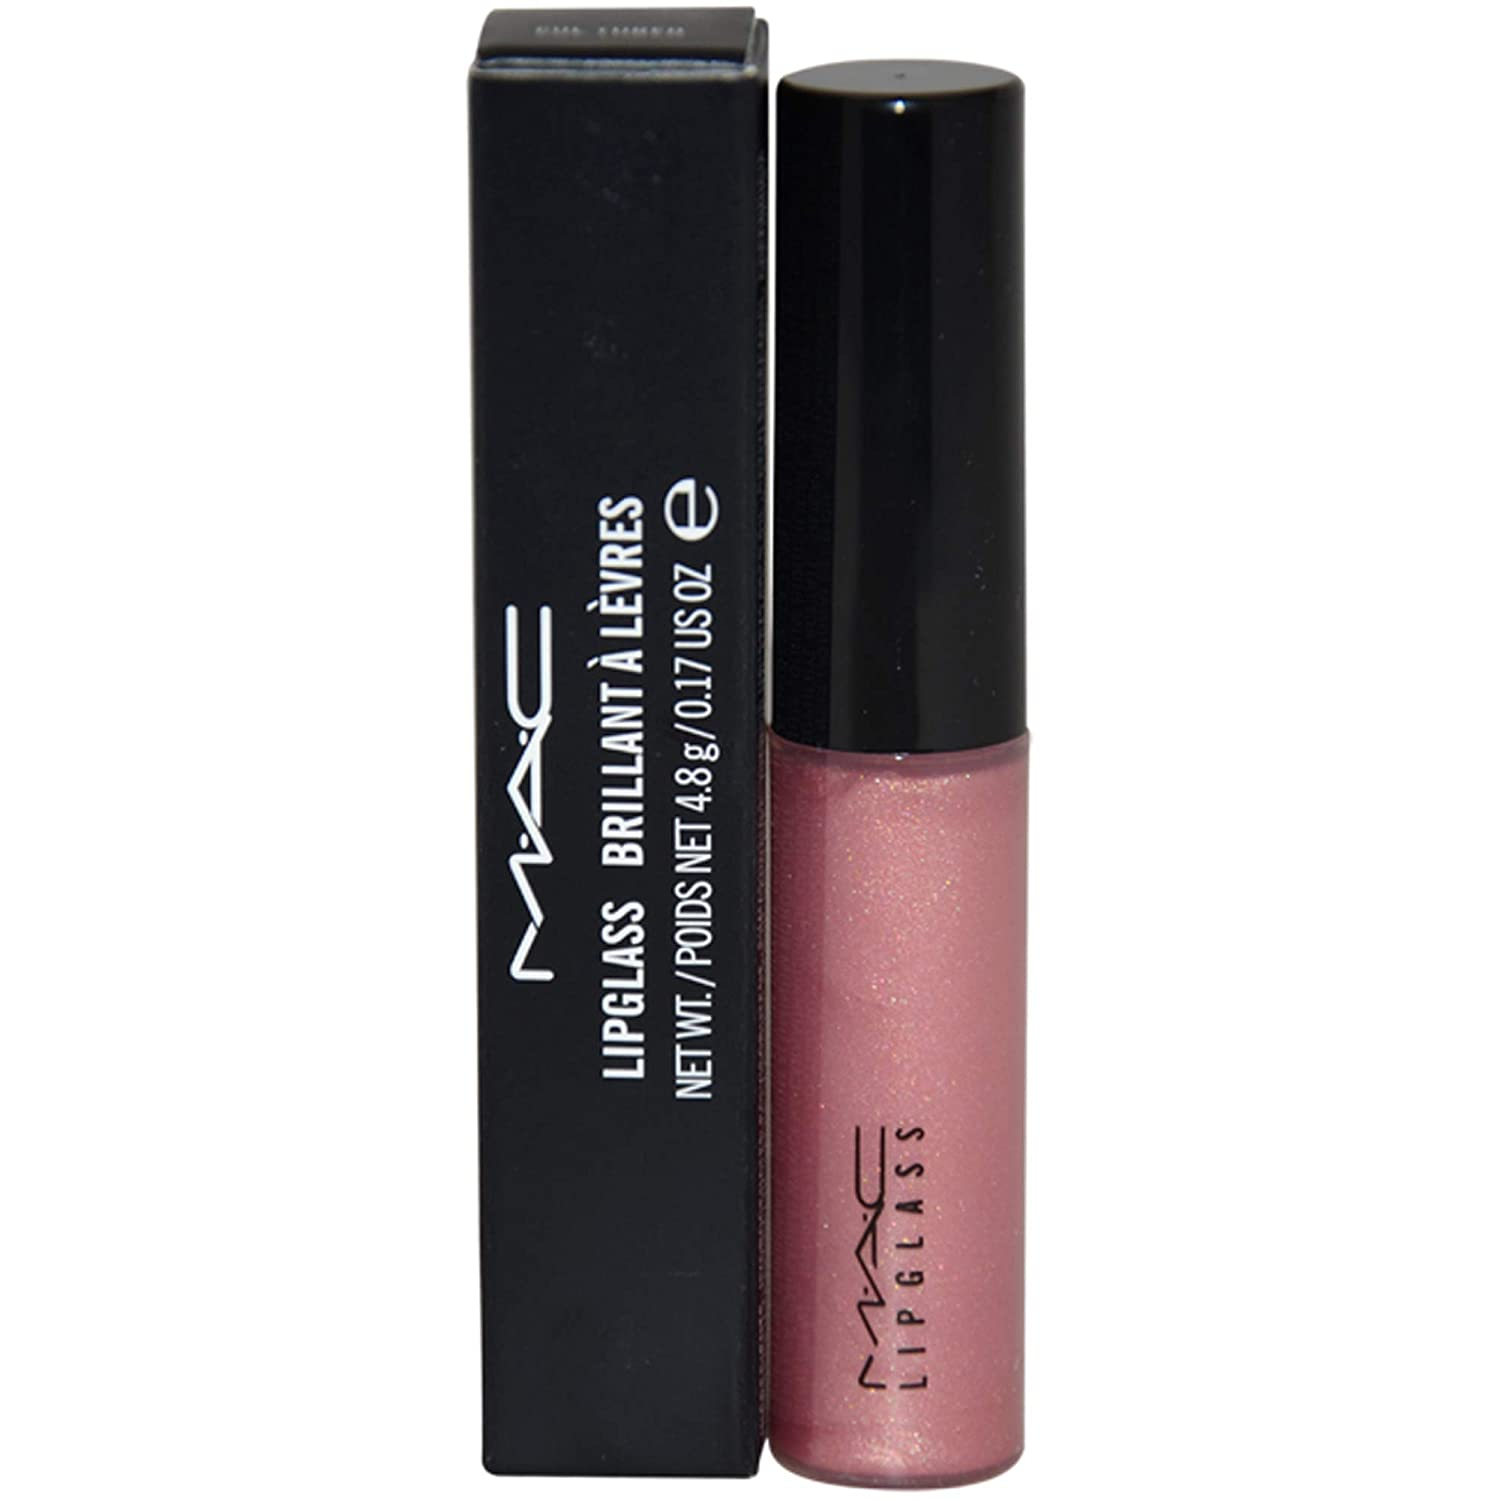 MAC Lip Glass Lip Gloss Cultured for Women, 0.17 Ounce